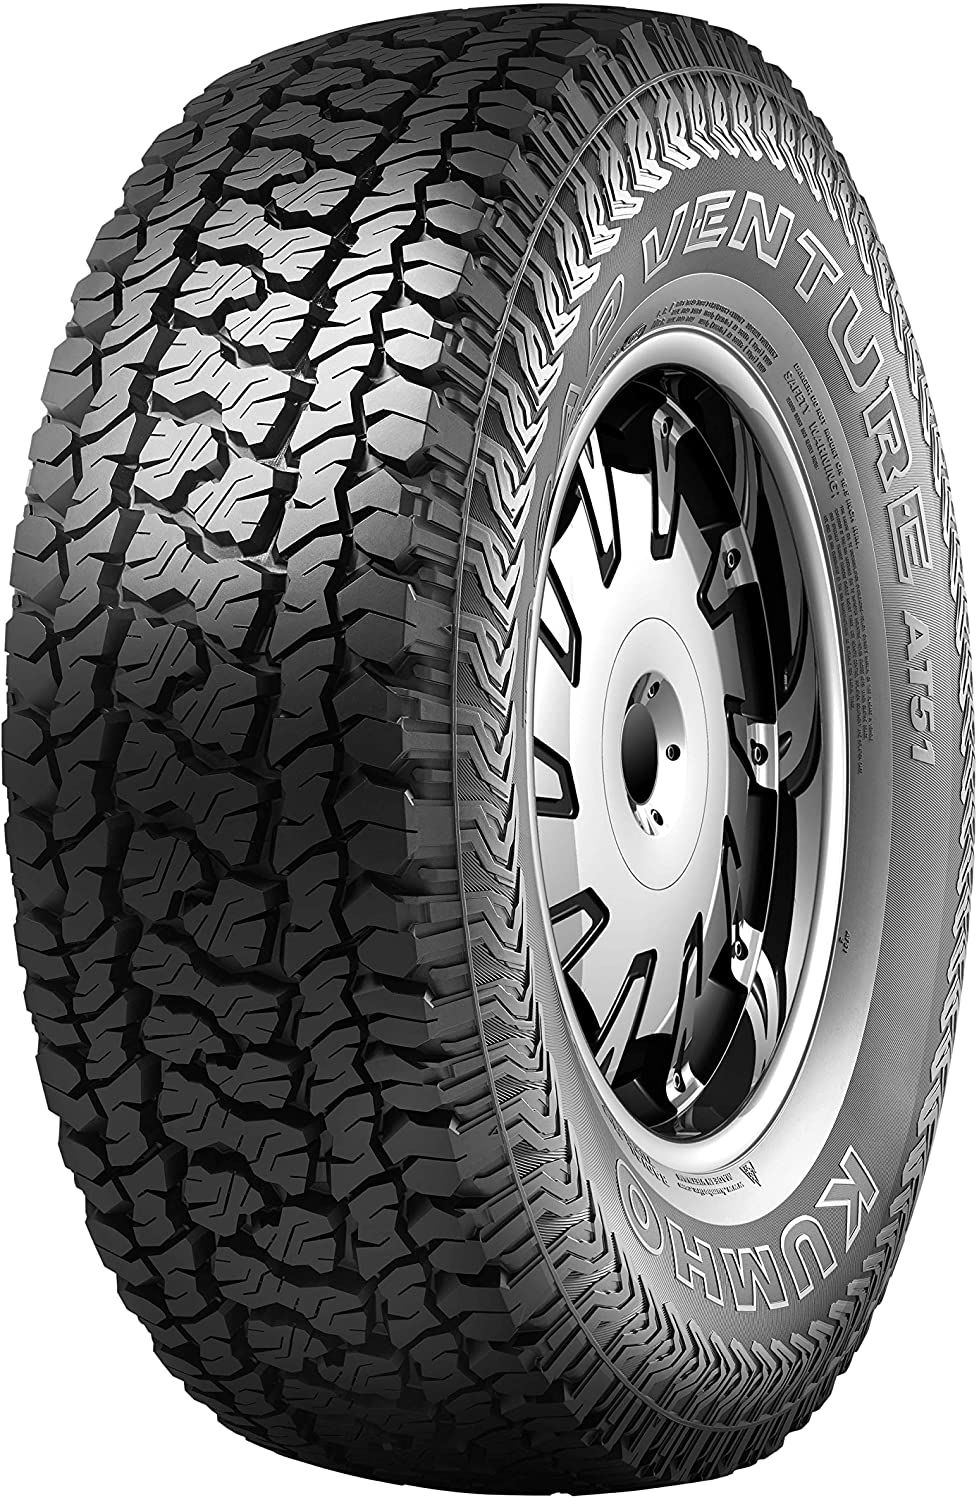 Best Truck Tires 2021 Best Truck Tires For Towing 5th Wheel Review Guide For 2020 2021